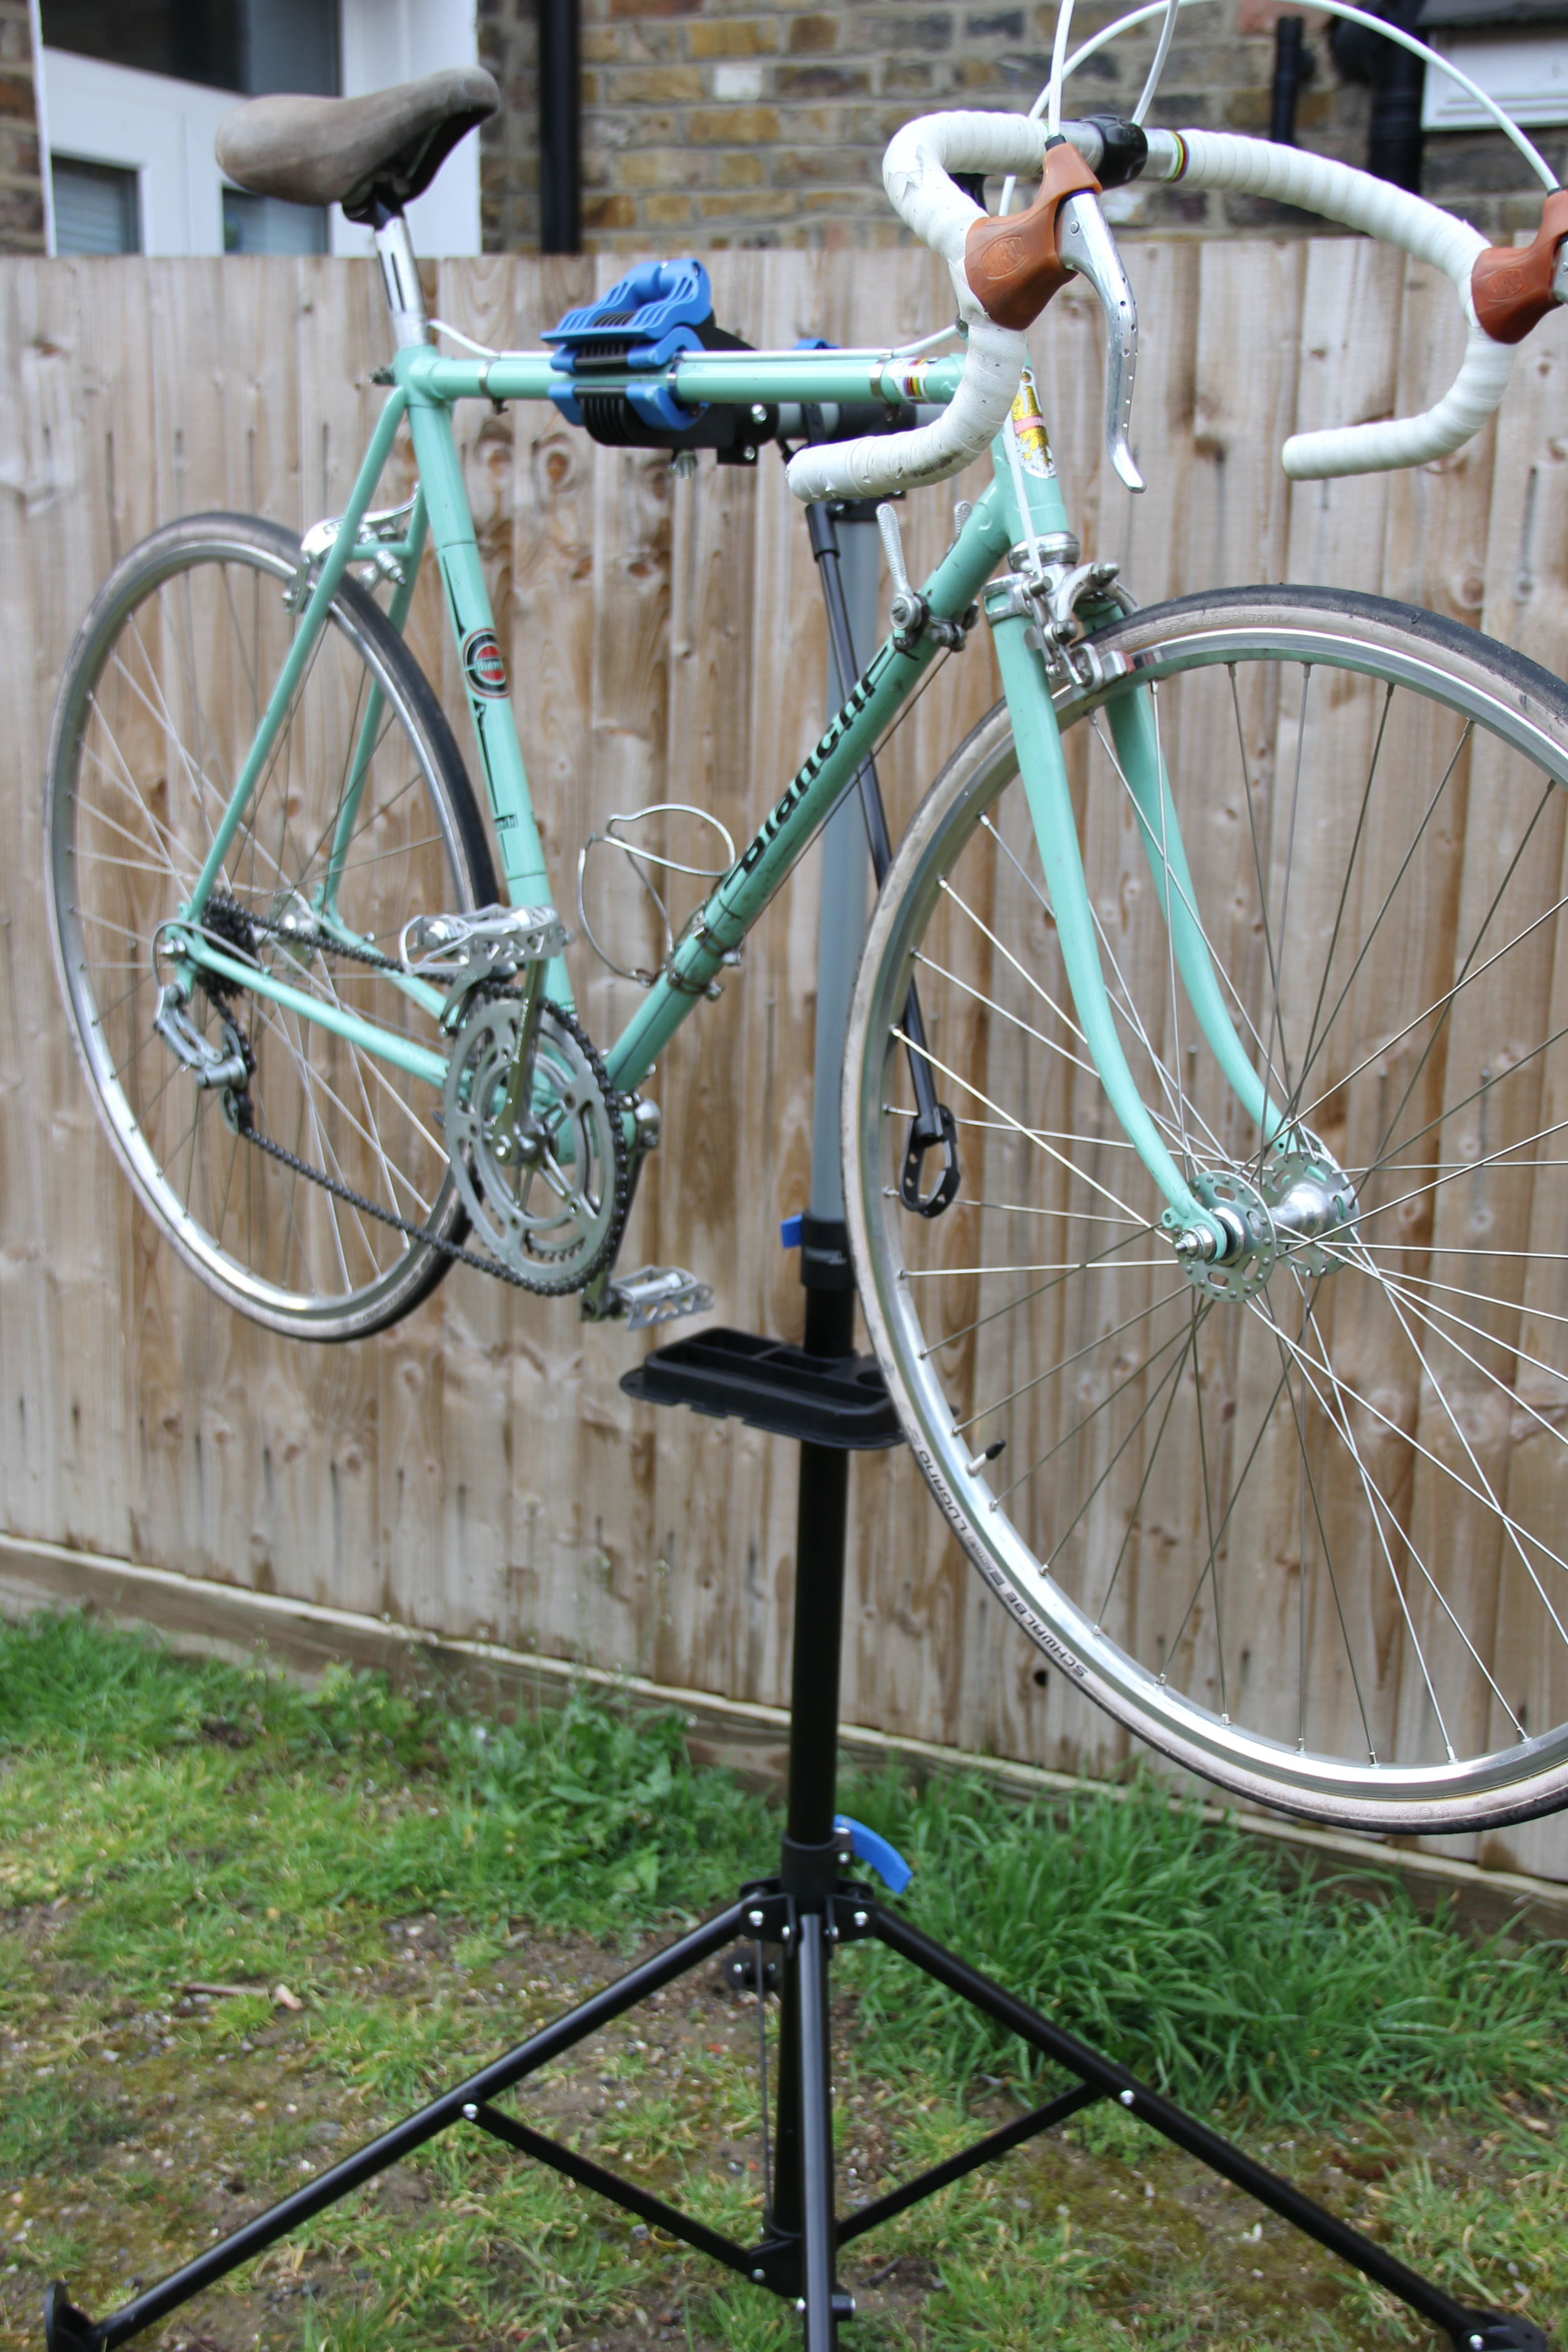 The Ride Velo Bianchi securely atop the £24.99 workstand